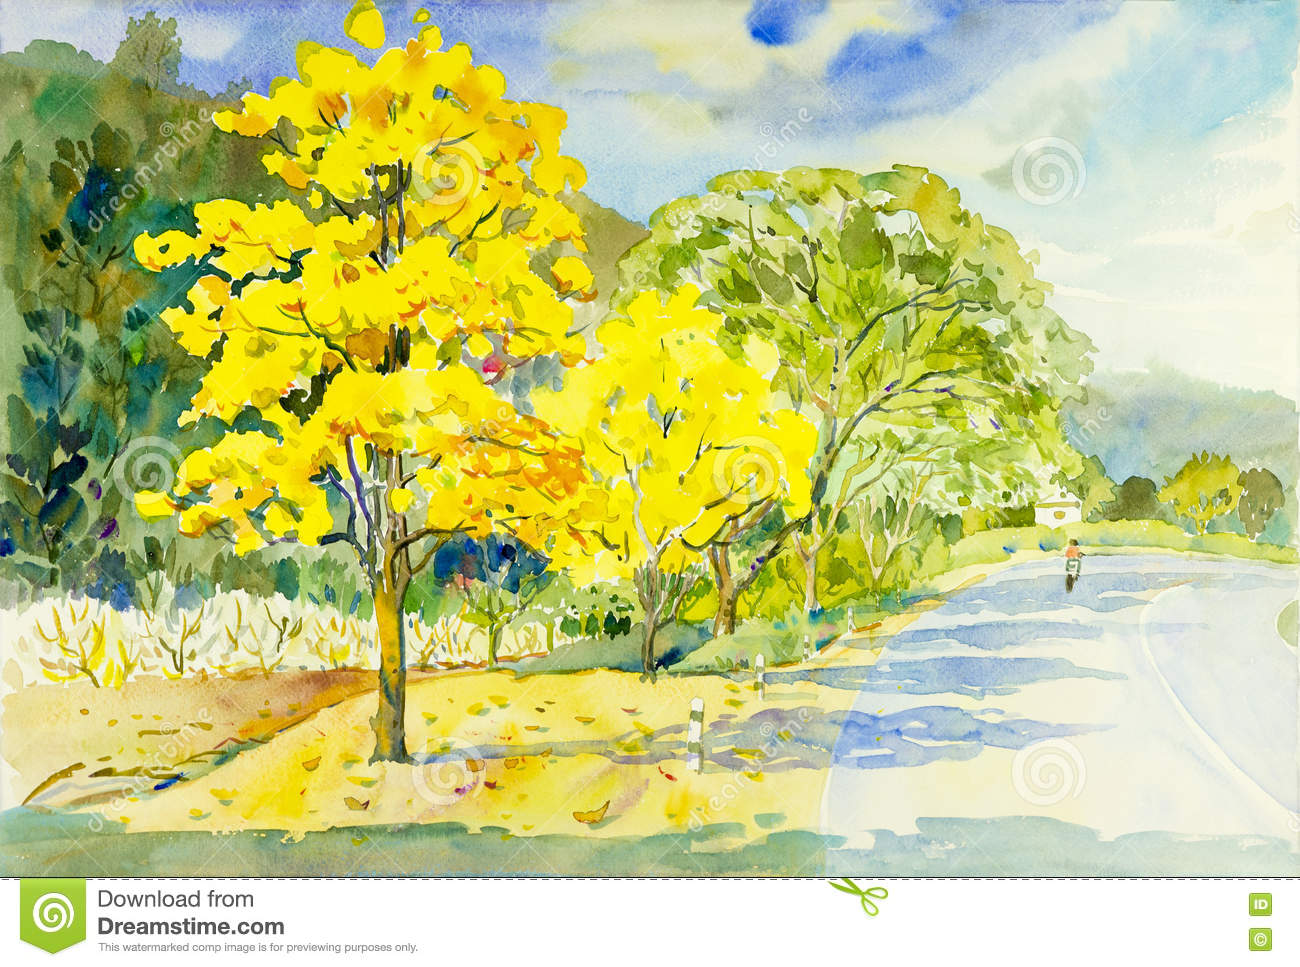 Watercolor Painting Original Landscape Yellow Color Of Golden Tree